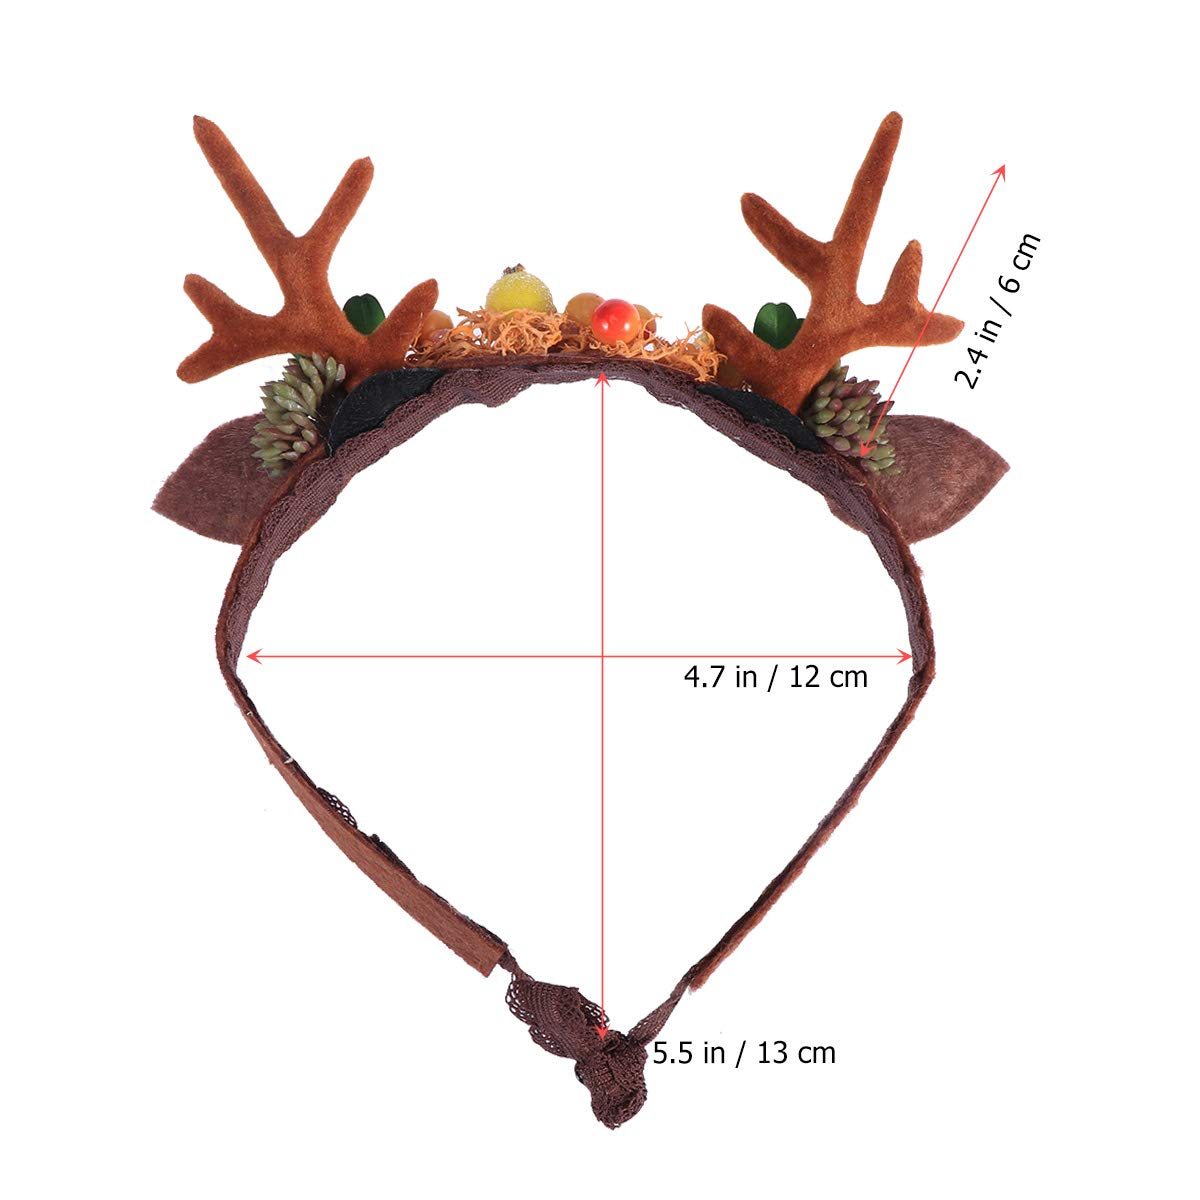 Toyvian Antlers Headbands Deer Hair Hoop Party Hair Accessory with Lace Lining for Baby Photography